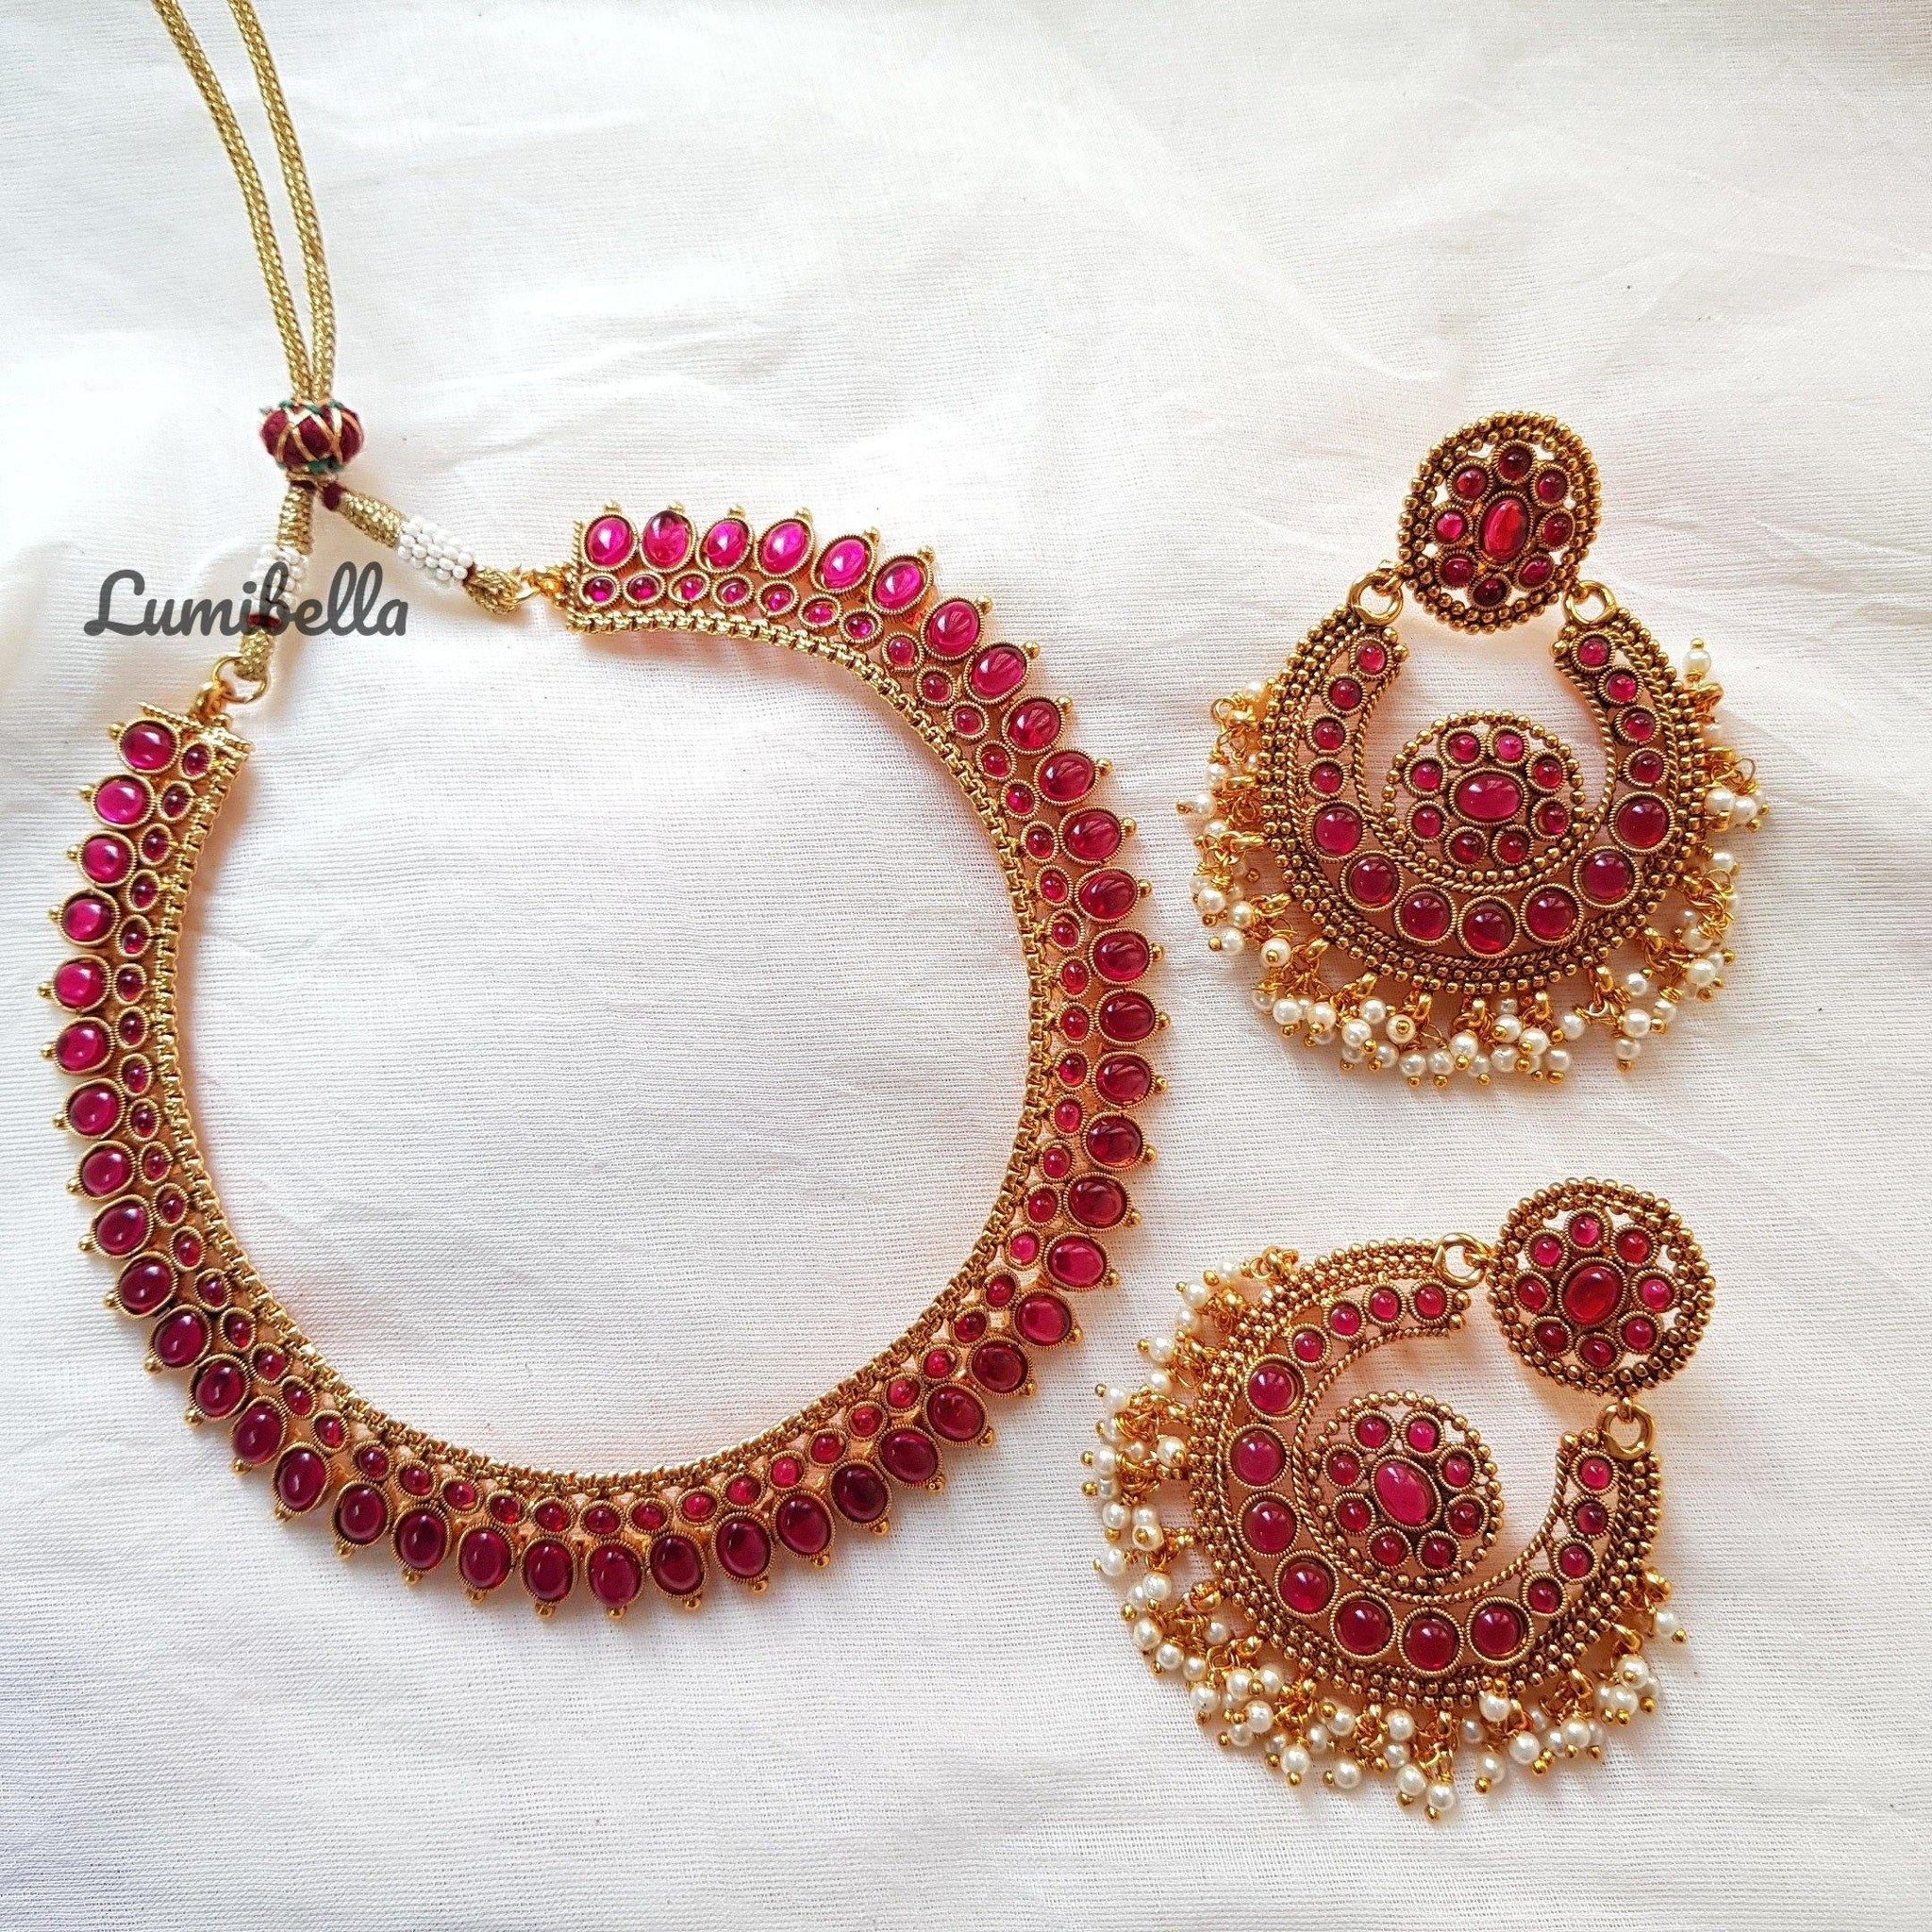 Gorgeous Antique Style Neckset